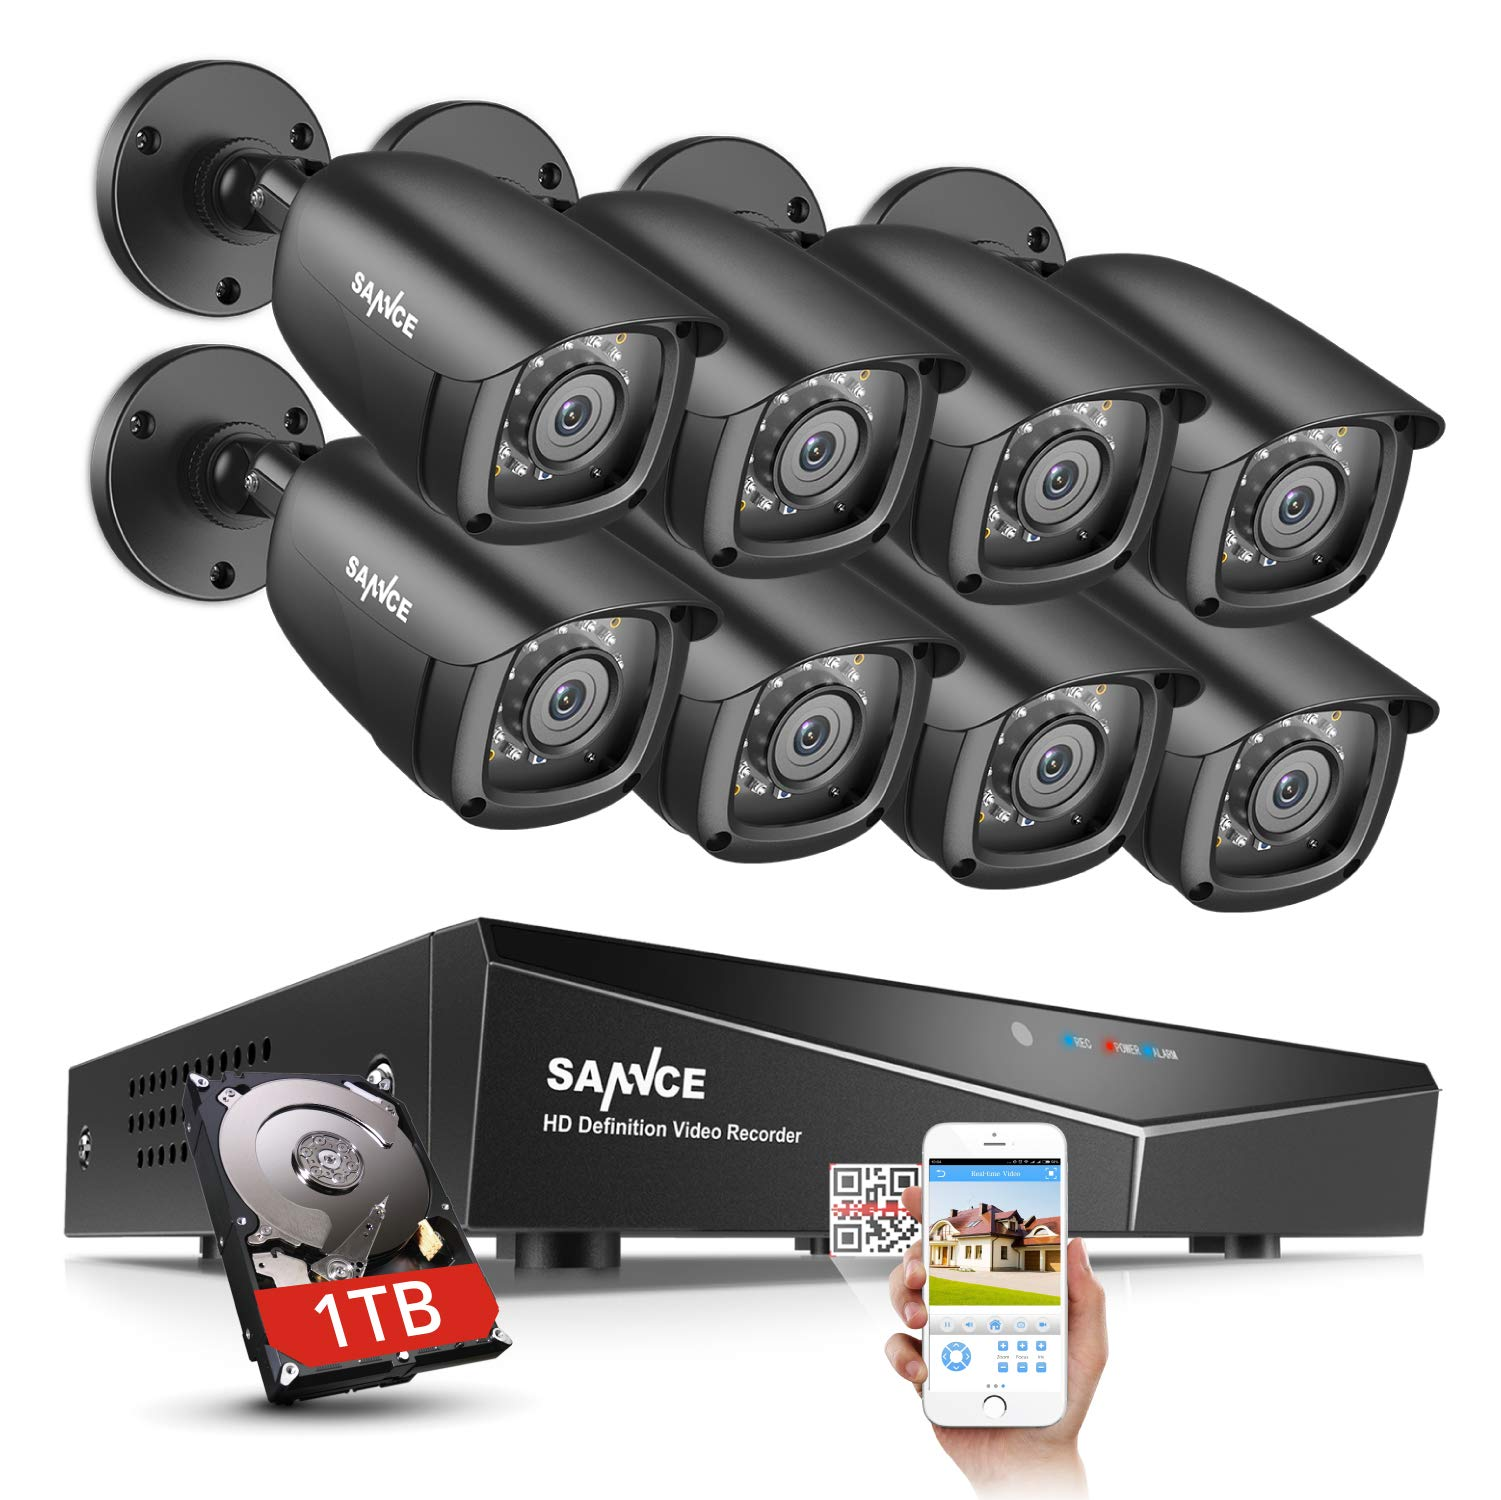 SANNCE 8CH CCTV 1080N Security Surveillance System for Home with 8x720p HD IP66 Weatherproof Security Cameras and 1TB Hard Drive Included,Email Alarm, Phone Access,Motion Detection,Night Vision by SANNCE